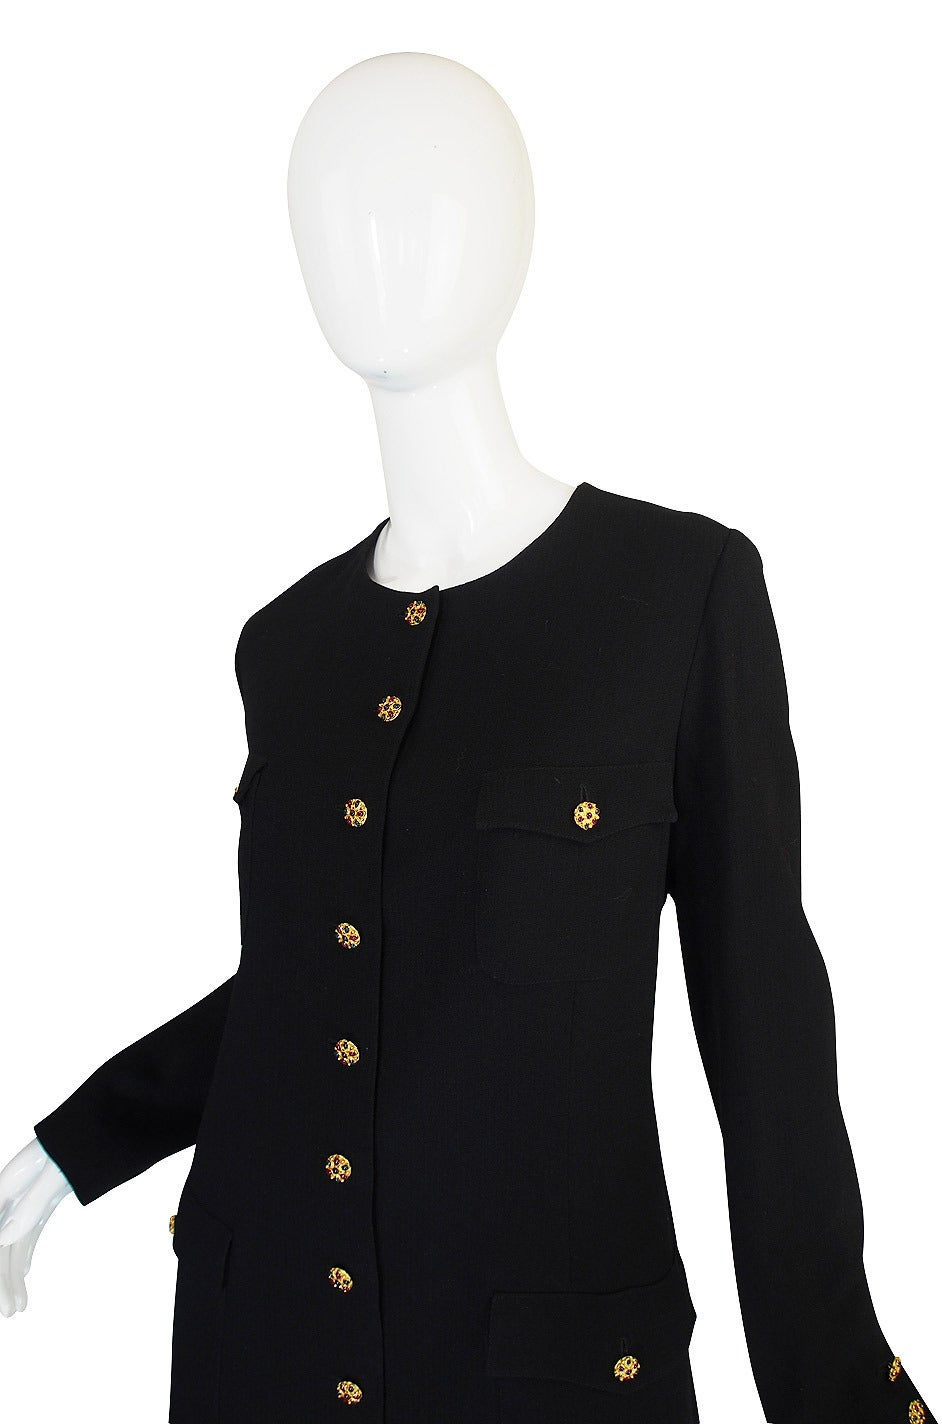 96A Runway Chanel Coat Dress w Cabochon Buttons 5